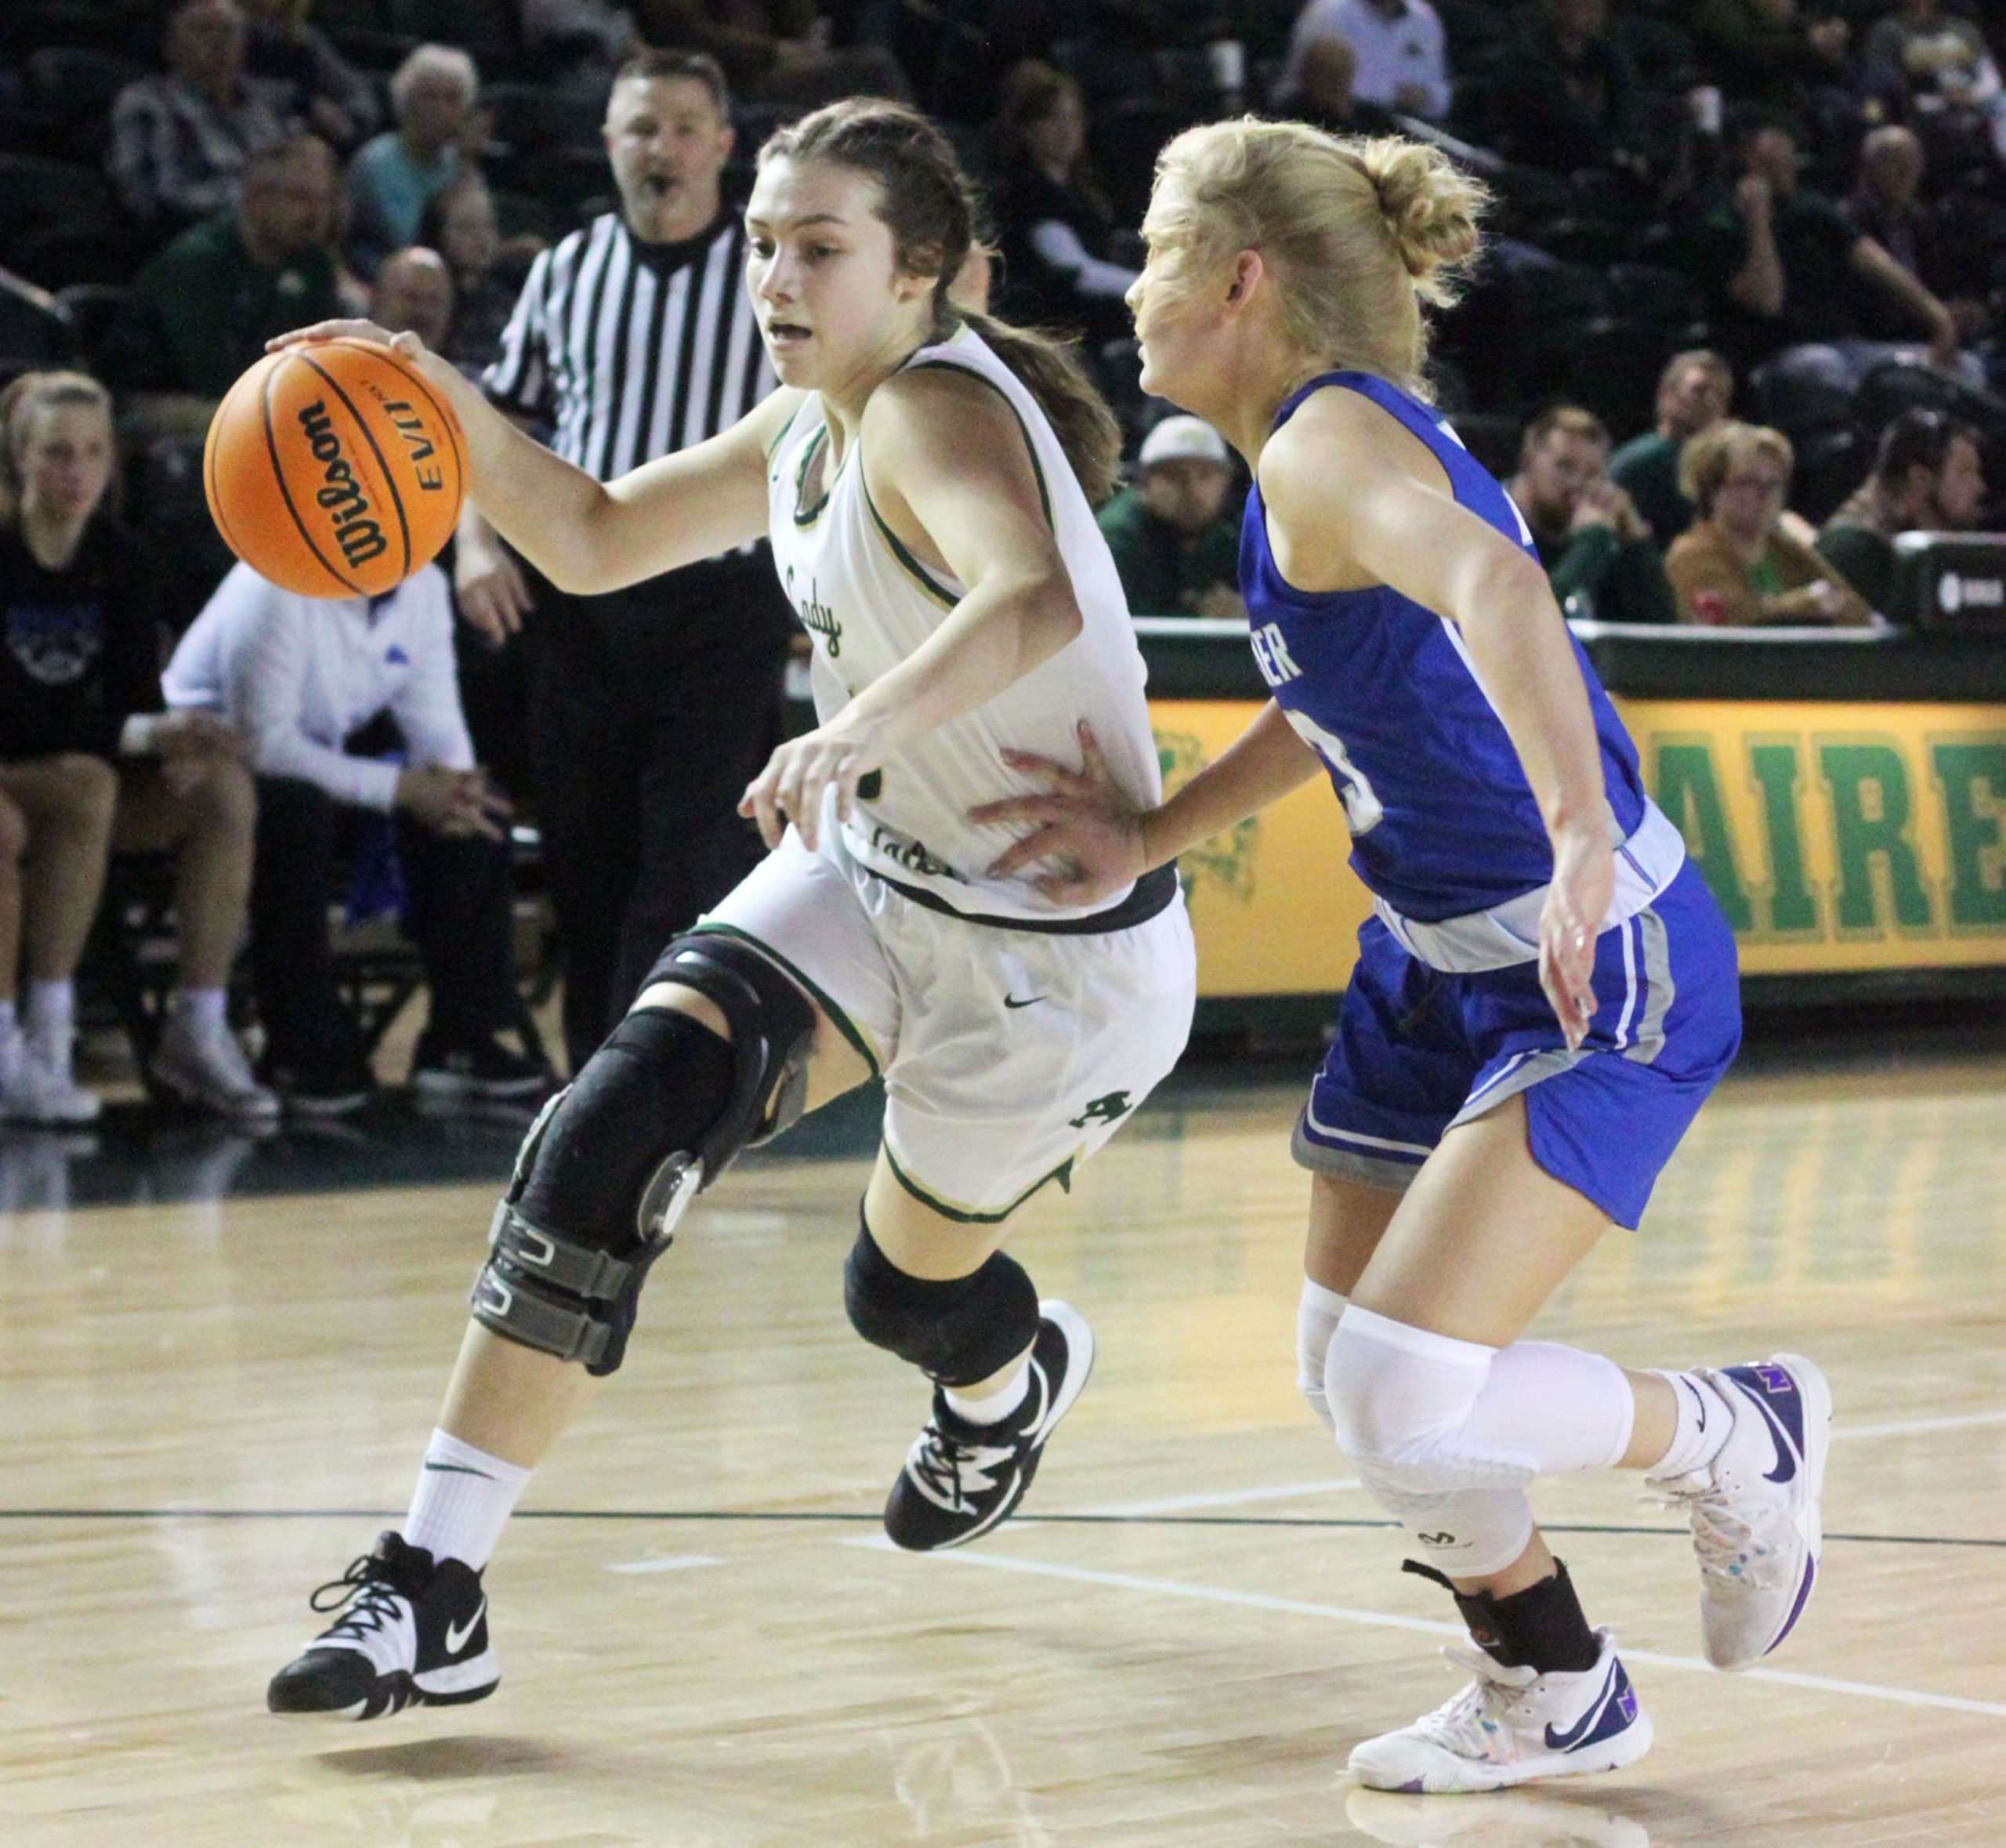 senior-leadership-fuels-lady-airedales,-69-46-–-helena-daily-world